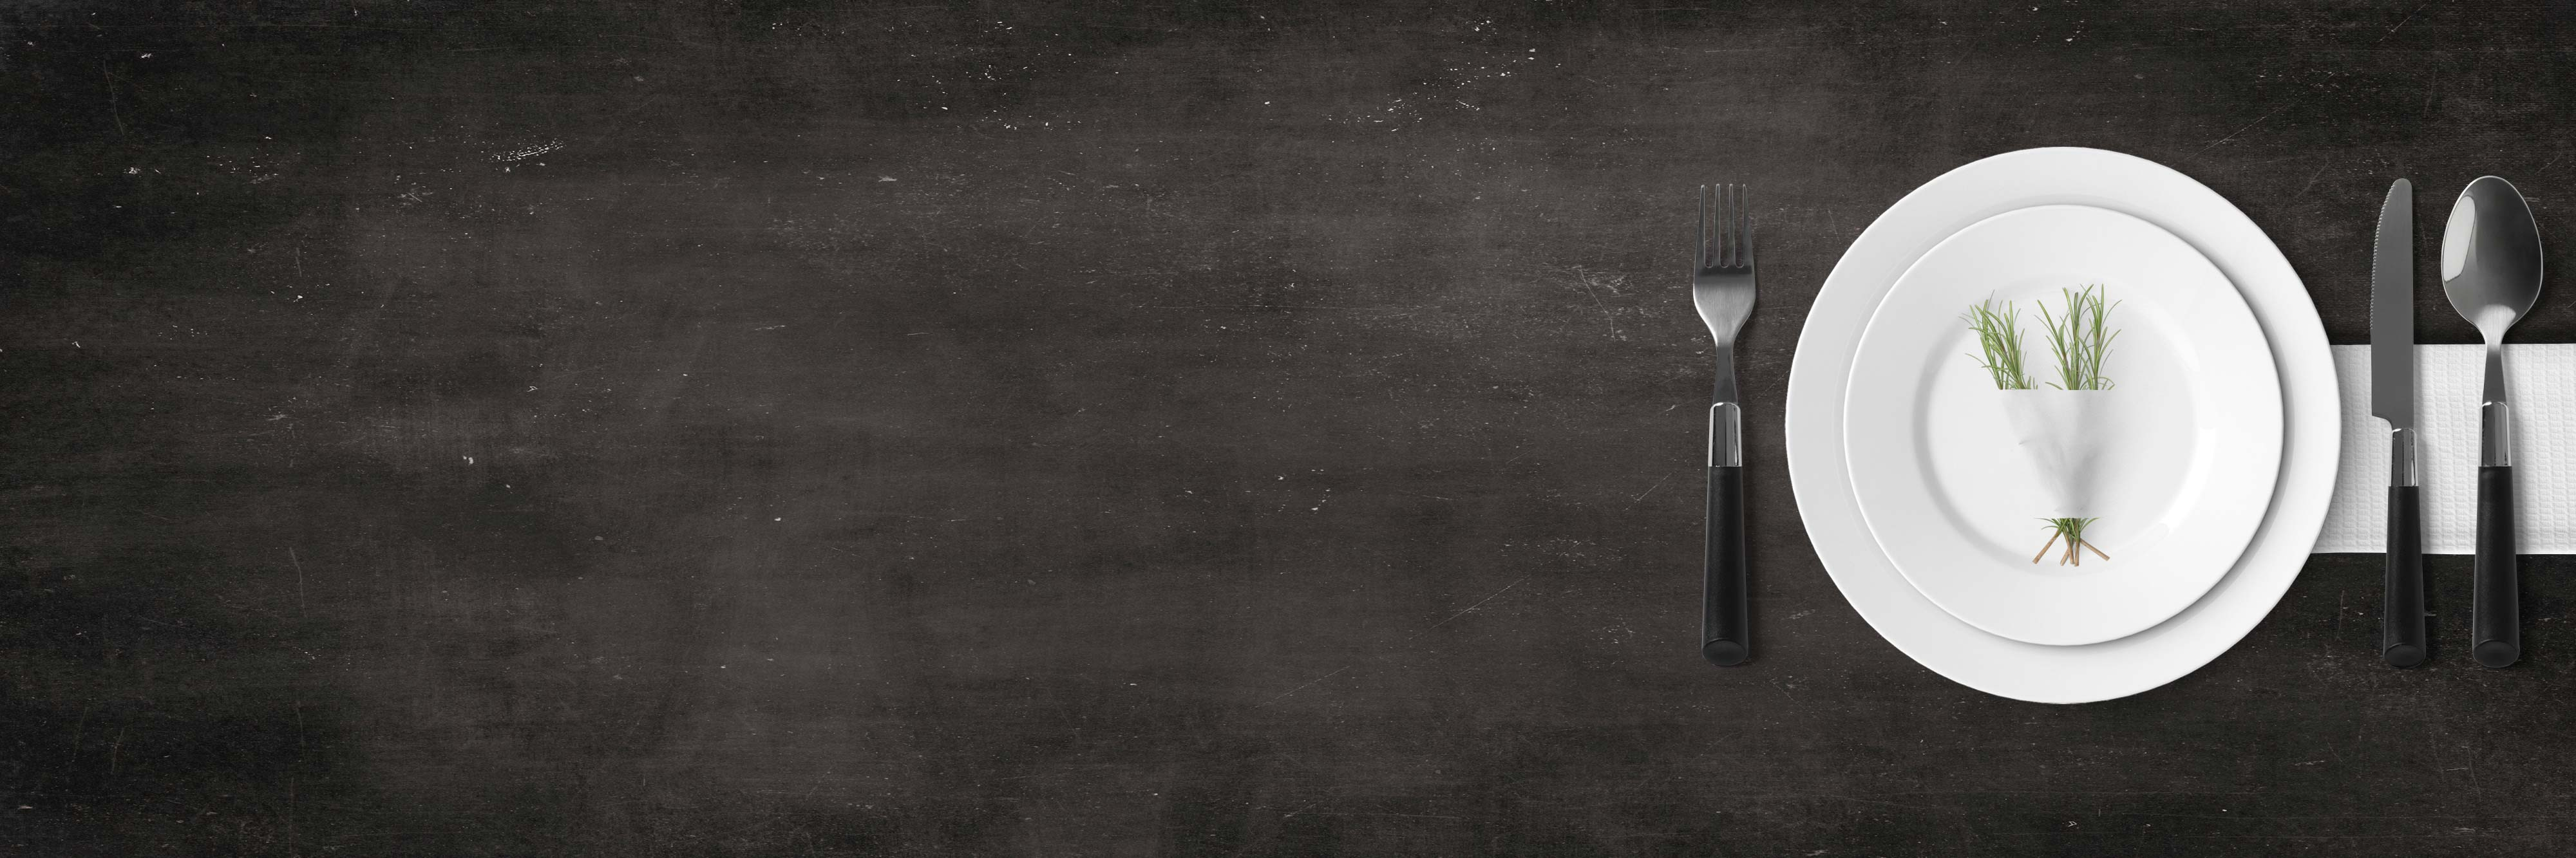 black chalkboard background with a set dinner plate